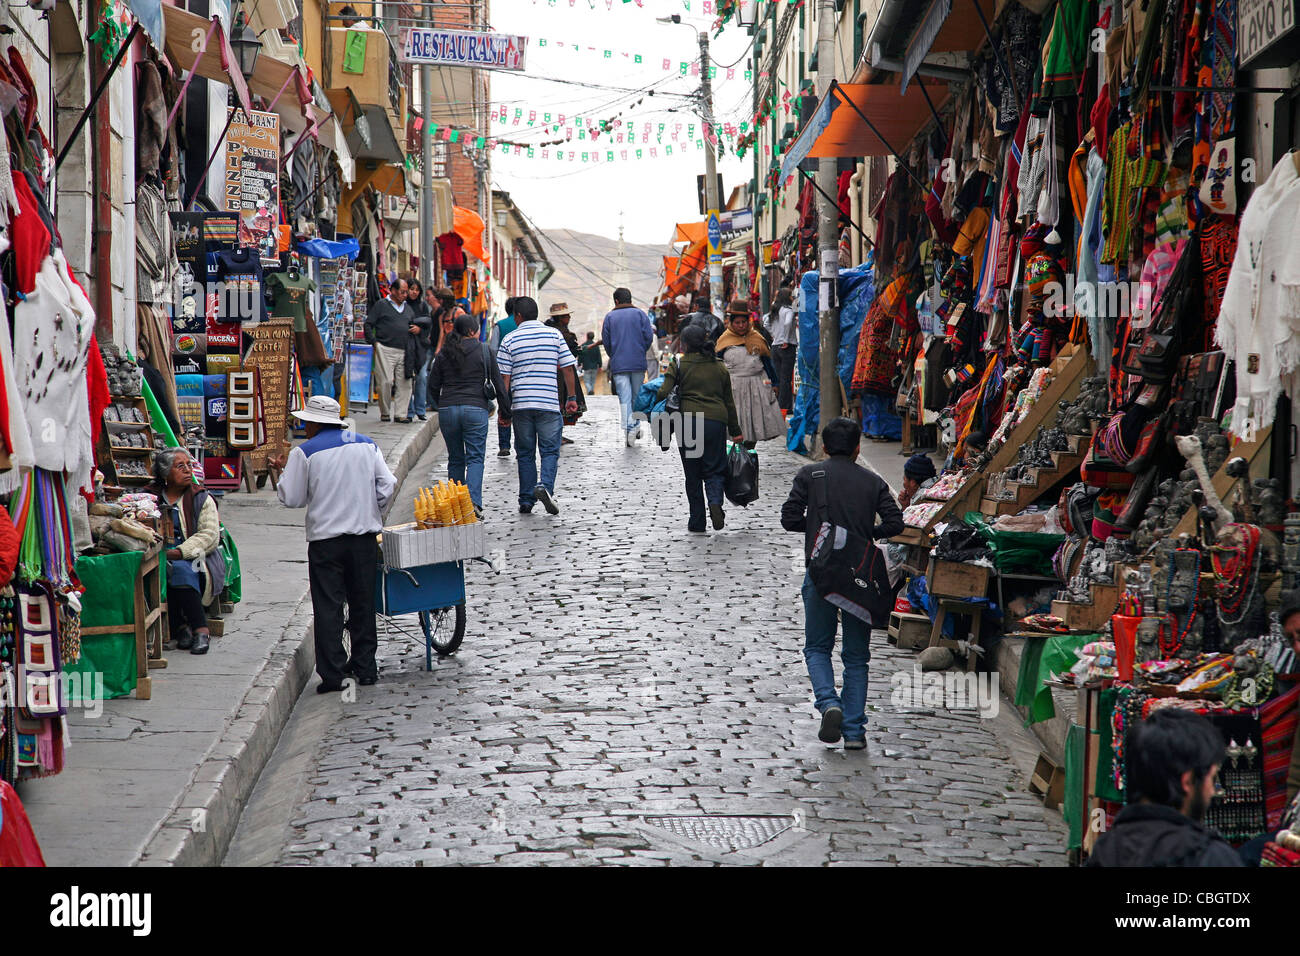 Pedestrians in street with souvenir shops for tourists in the city La Paz, Bolivia - Stock Image